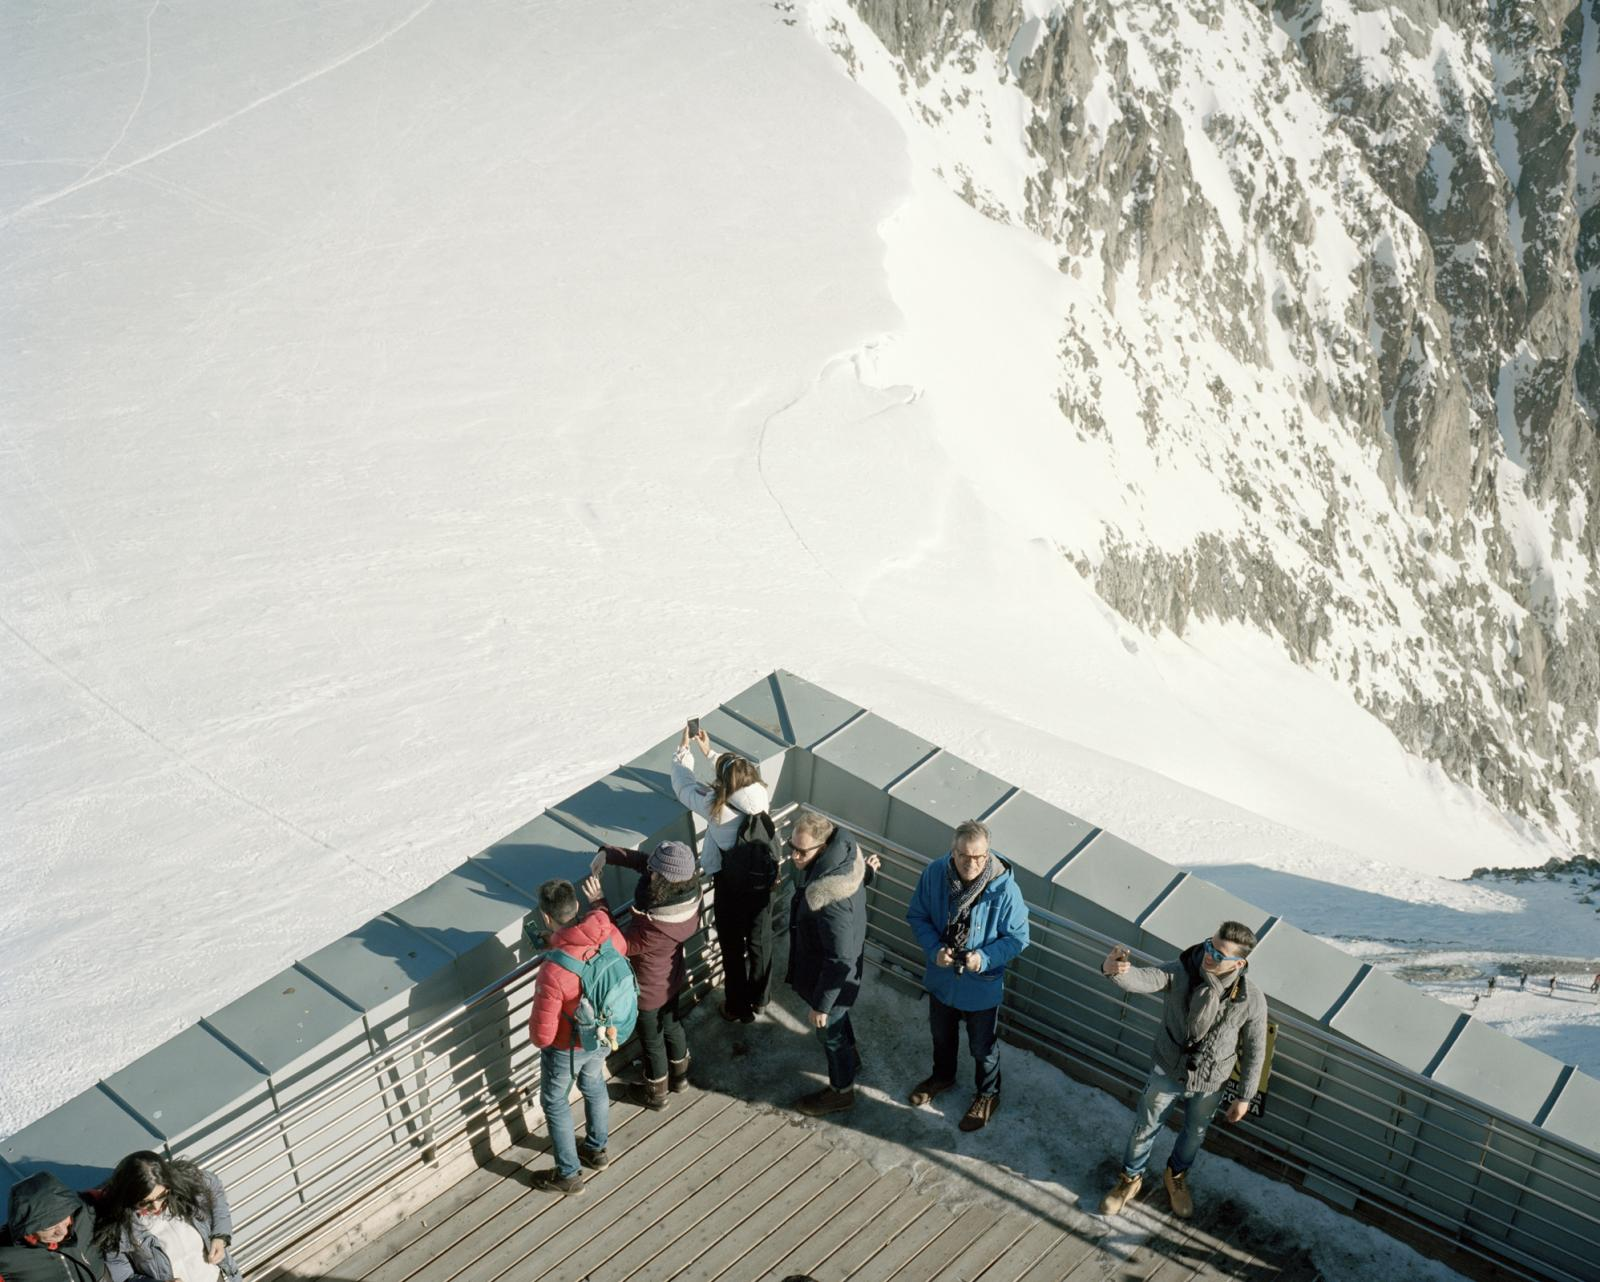 Italy, Courmayeur. A view of the last stop of the Monte Bianco's cableway, the highest of Europe. In the last years, the border between France and Italy moved due to glaciers melting and in 2019 Summer, for the first time, on the Torino Hut, at 3,329 m on the Mont Blanc, the temperature was around 10oC.